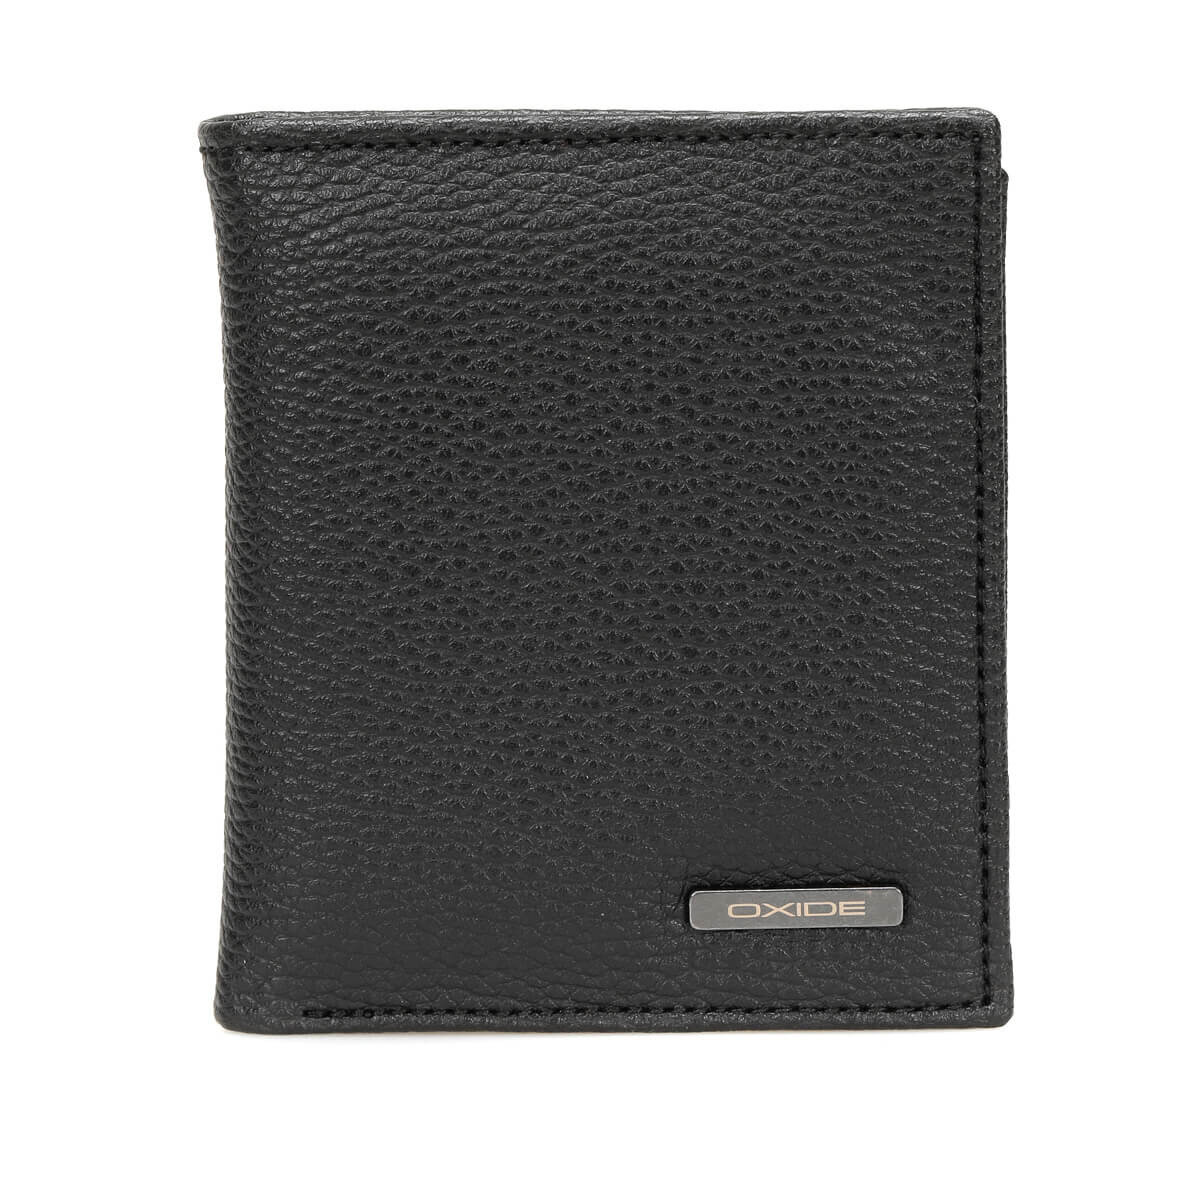 FLO MKNY3505 Black Male Wallet Oxide